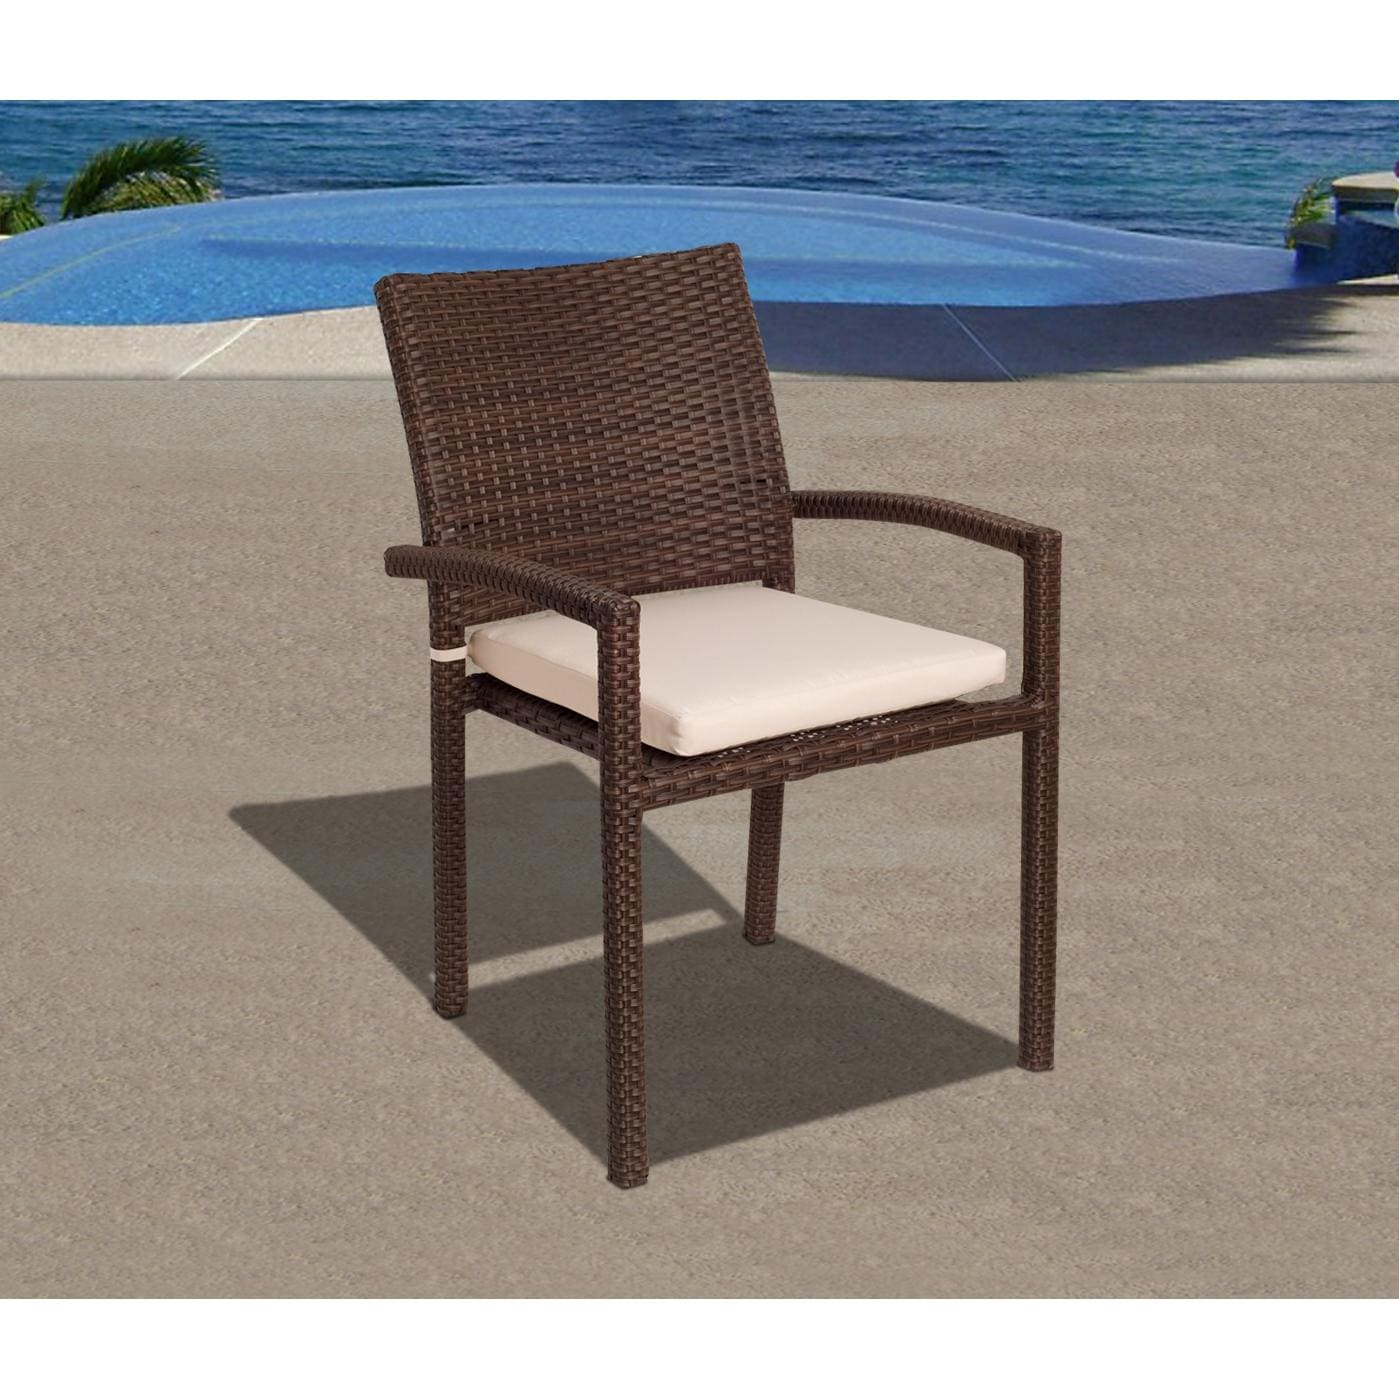 stacking resin chairs chair kitchen design atlantic liberty 6 person wicker patio dining set